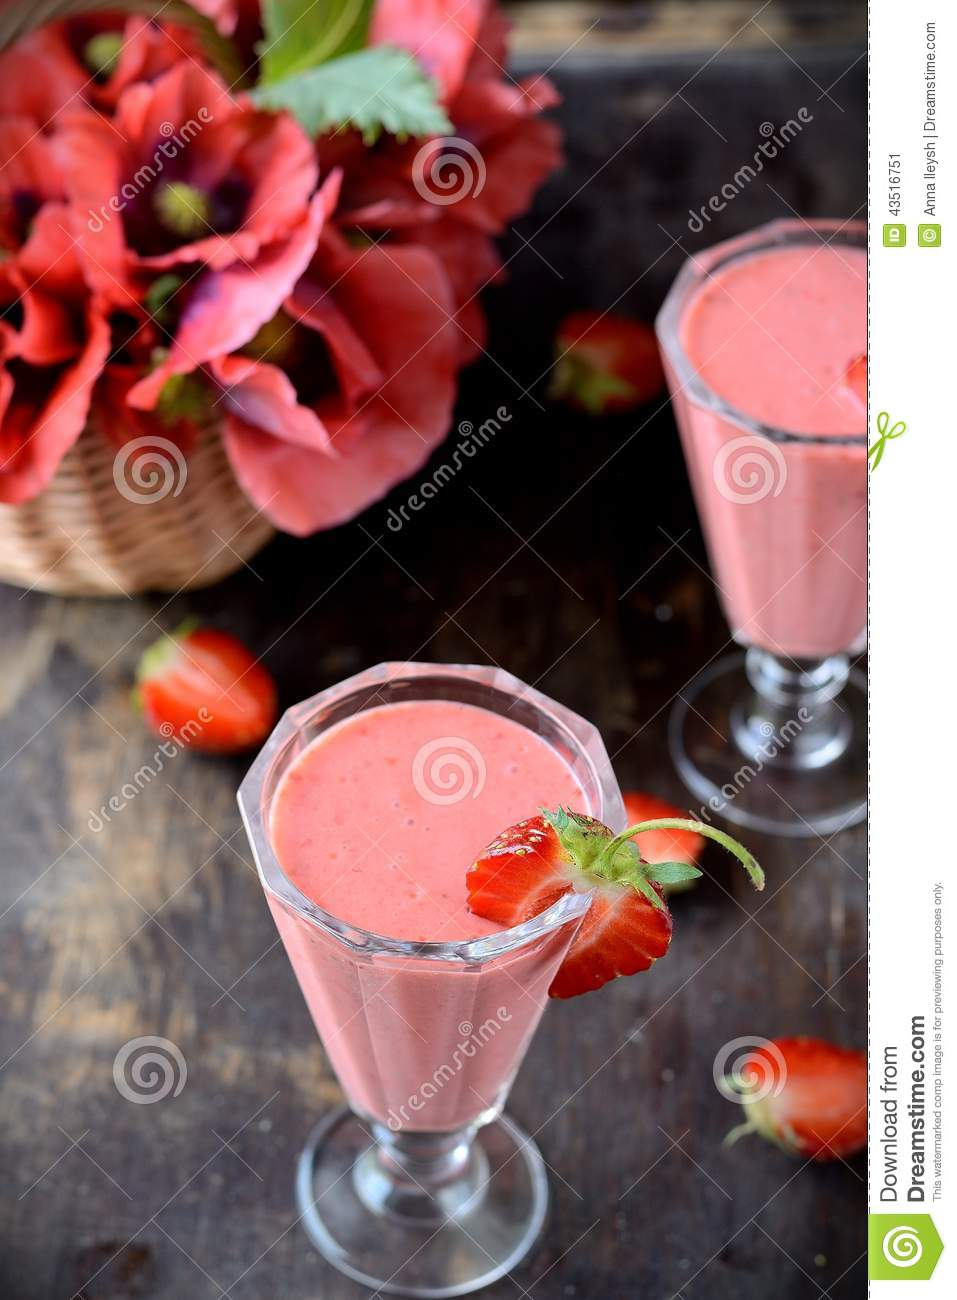 Two glasses of strawberry cocktail